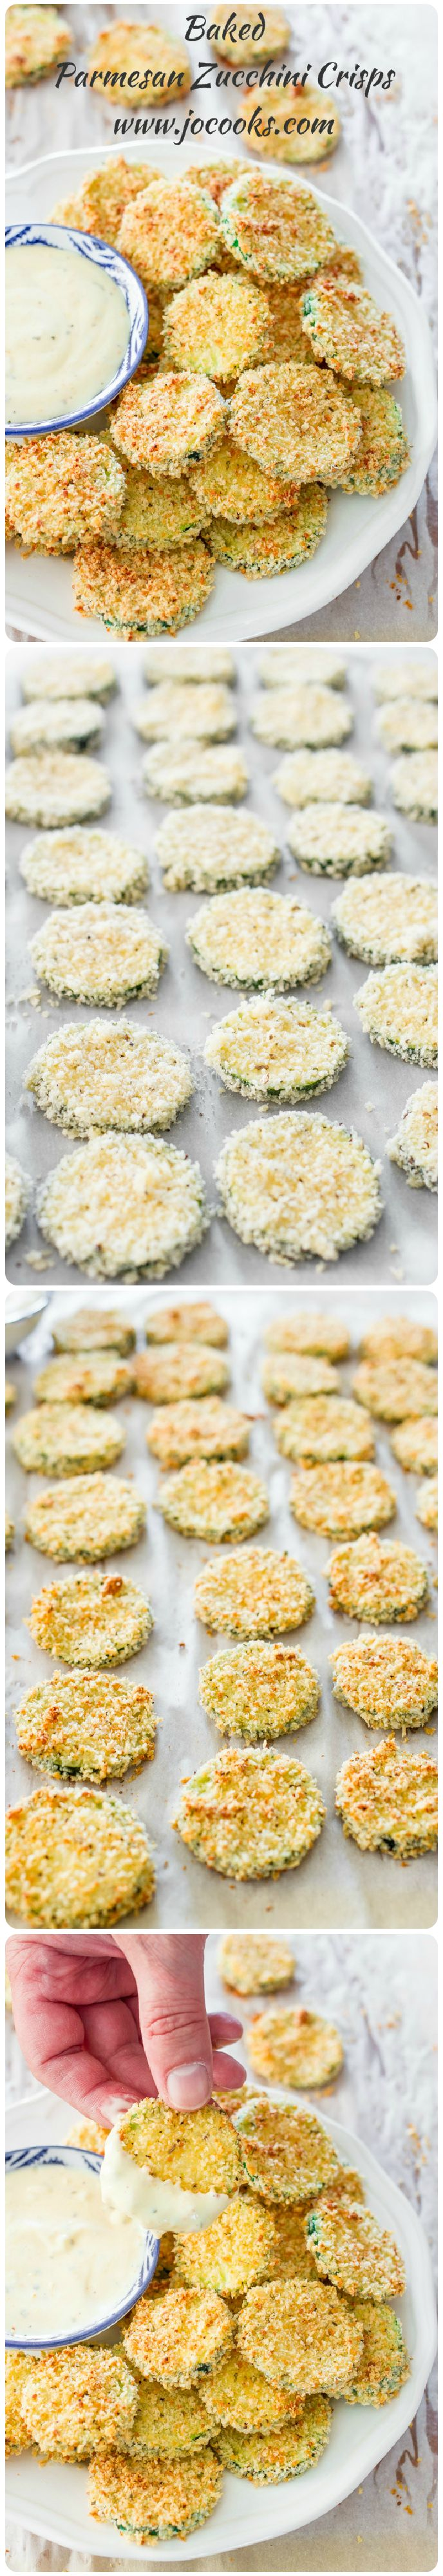 baked parmesan zucchini crisps #lowcarb #healthy